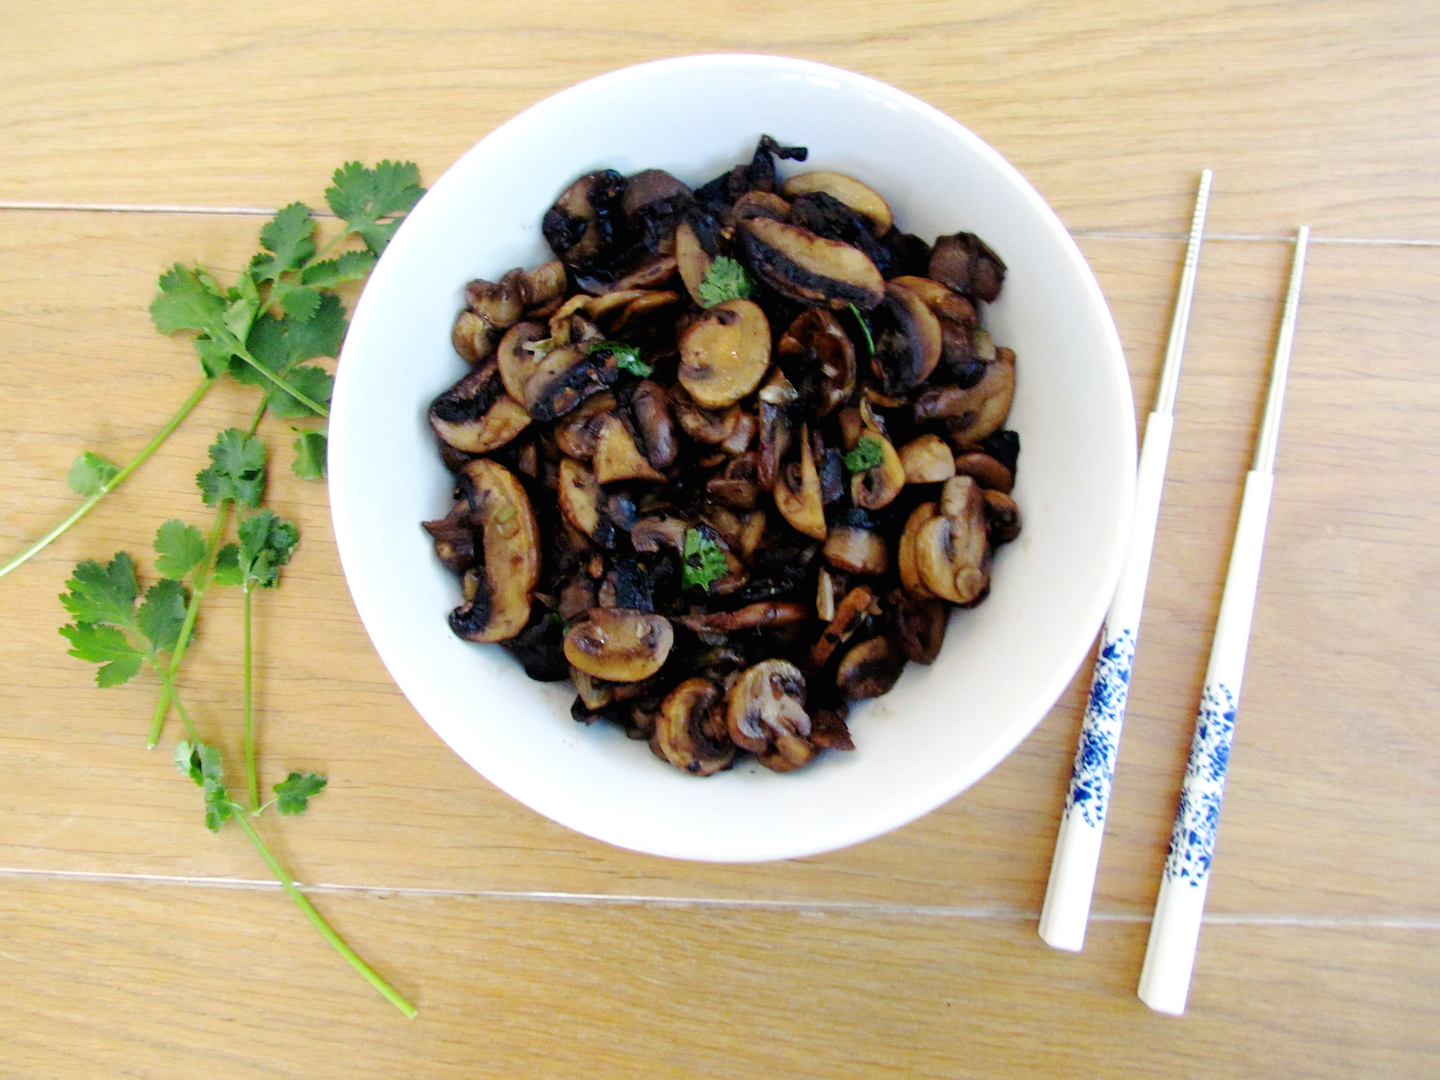 Asian stir fried mushrooms savormania looking of asian inspired recipes ive put them all together to make cooking easier for you click here for all asian recipes forumfinder Gallery